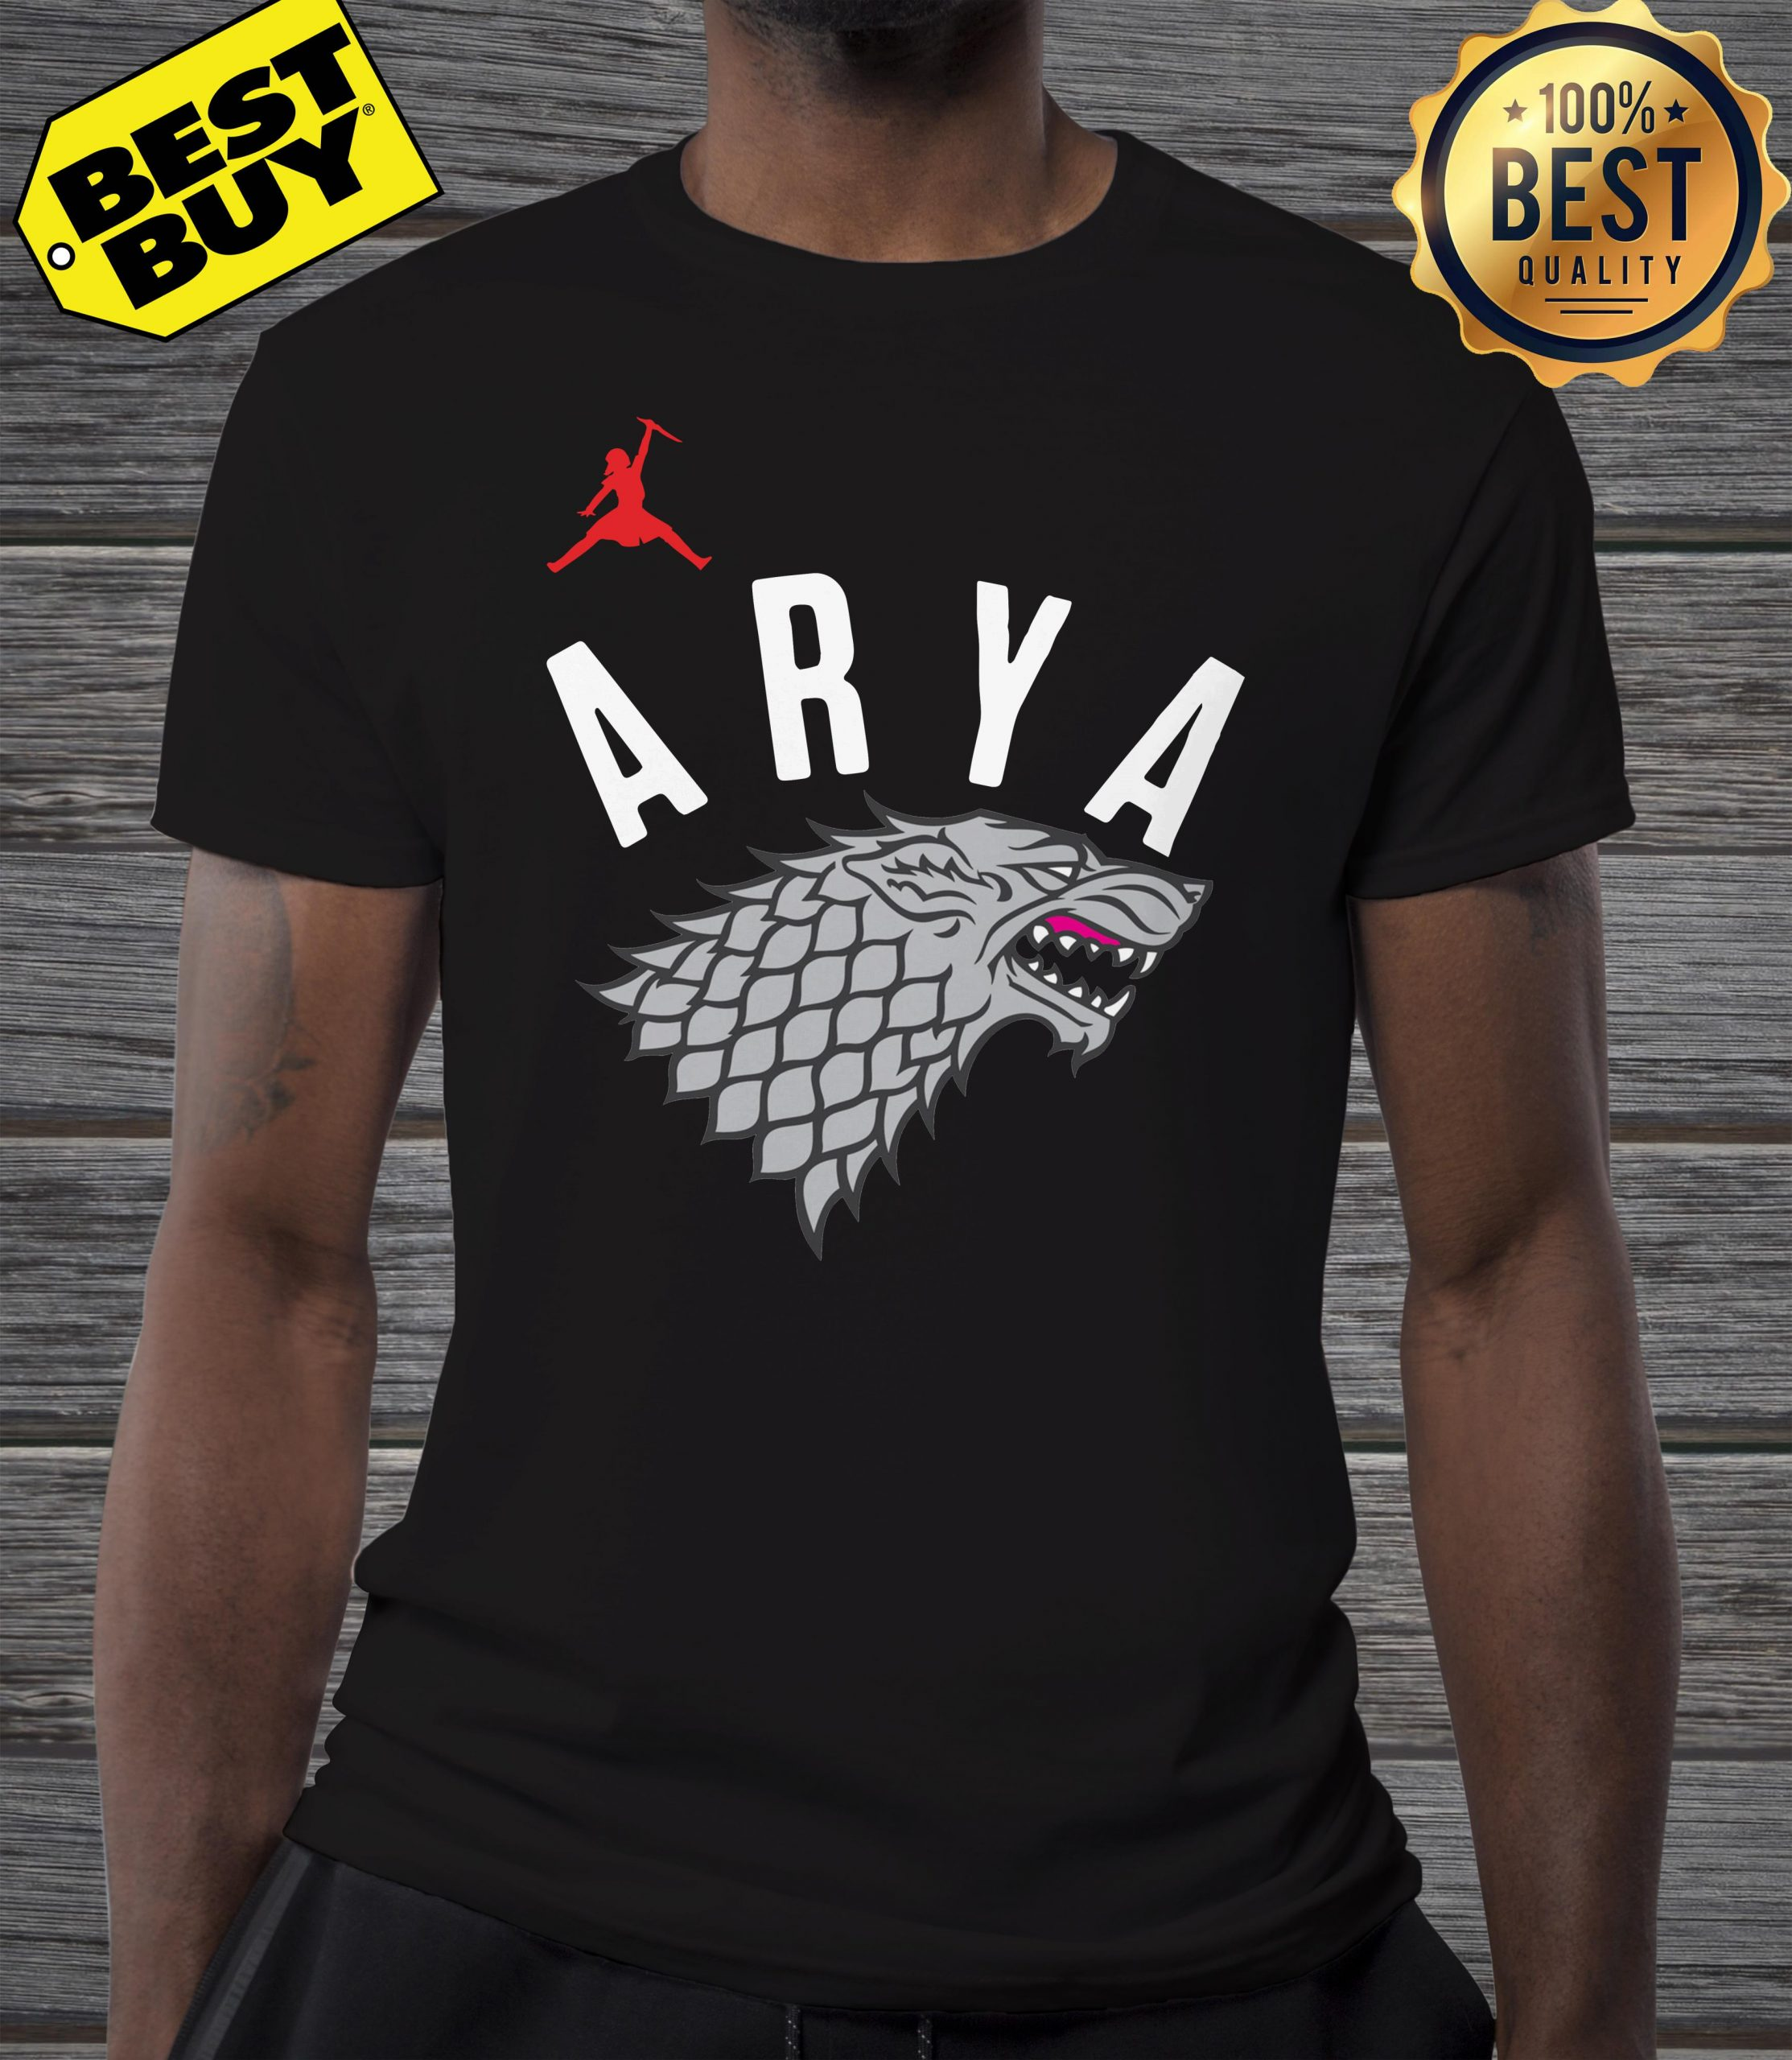 Arya Stark Game of Thrones Silver Foil Shirt